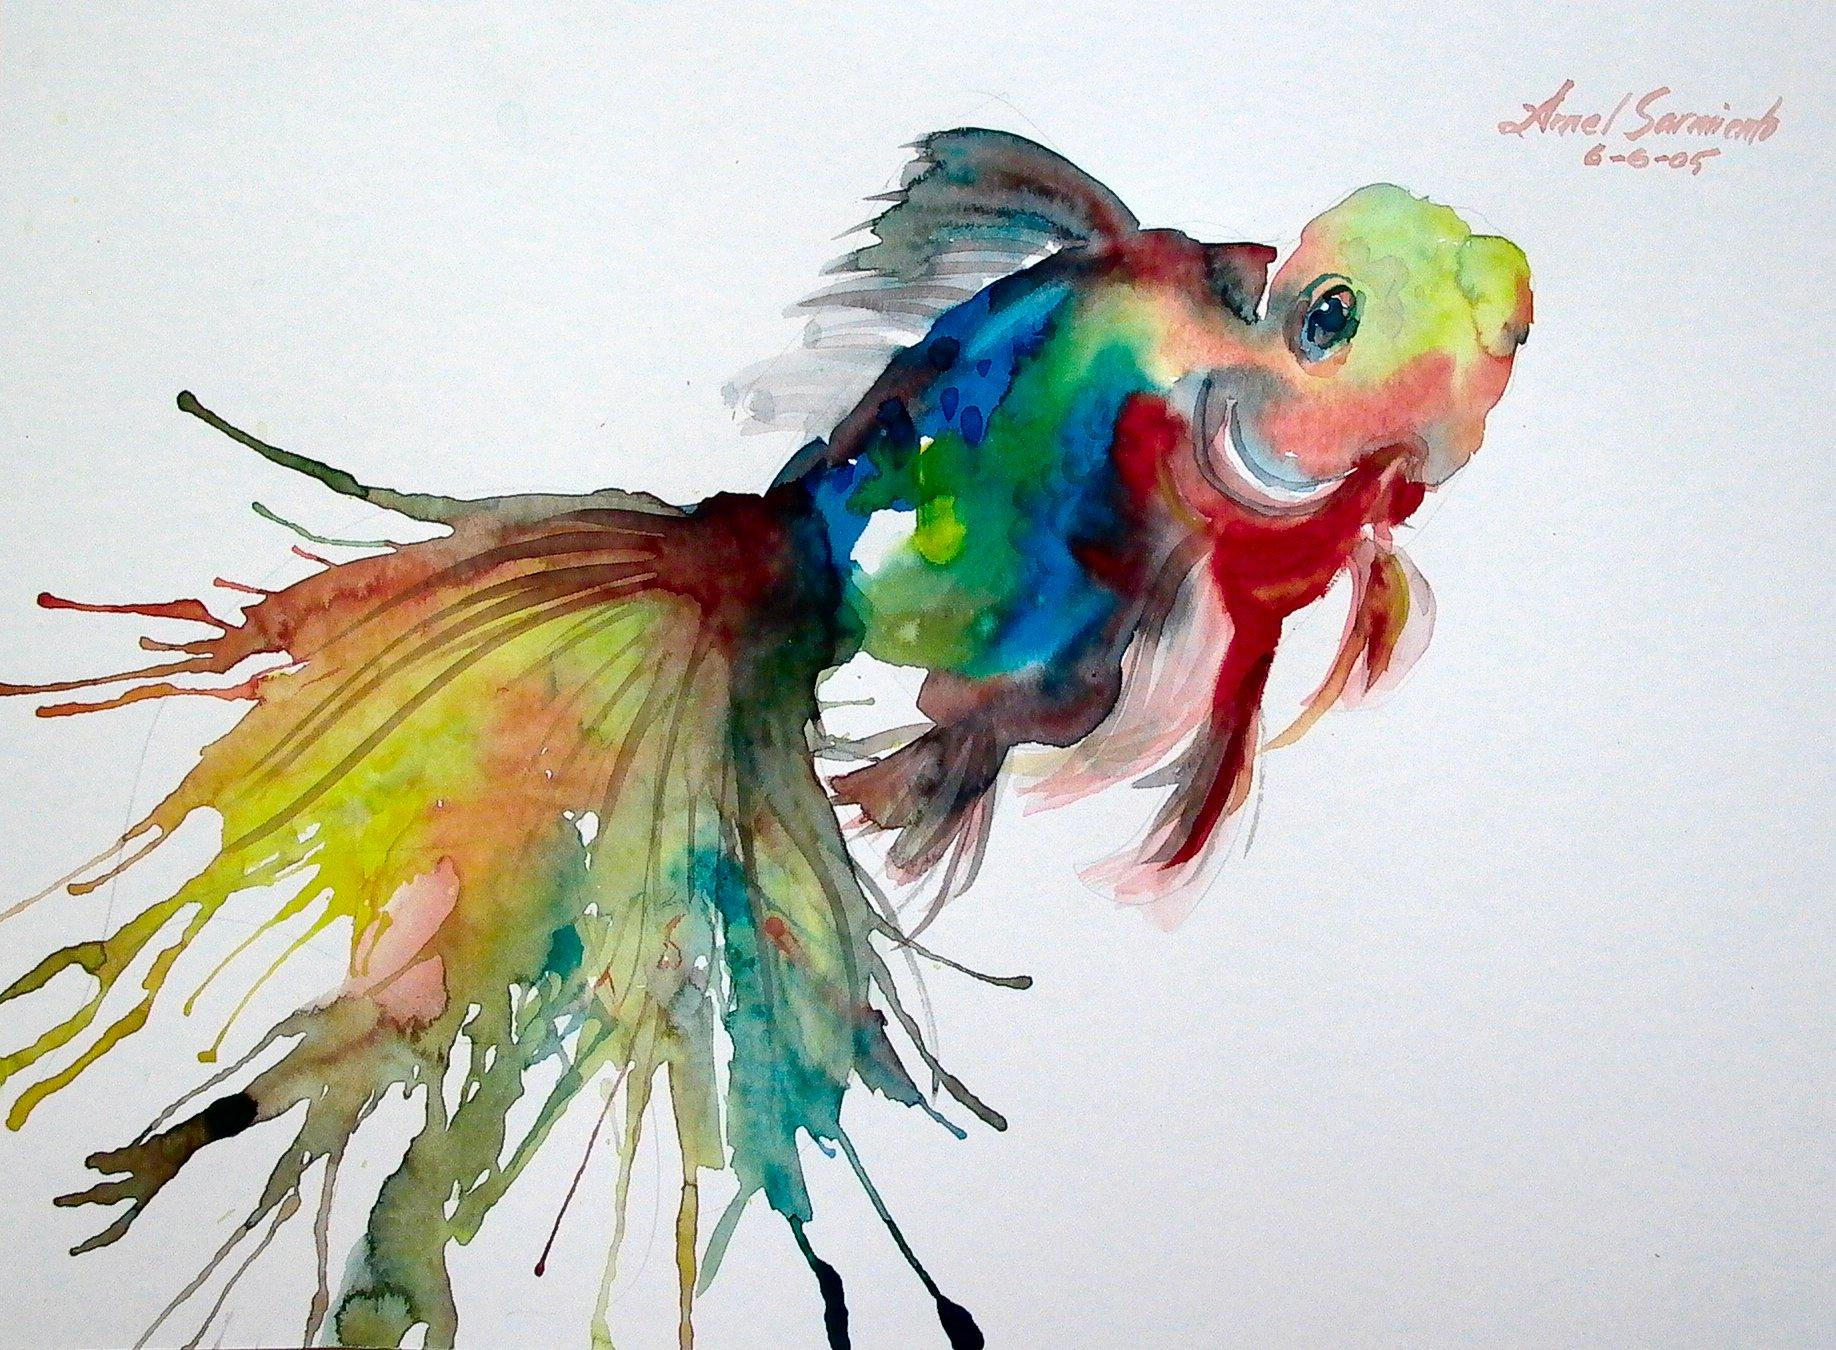 1000 images about watercolour animal based art on for How to paint a fish